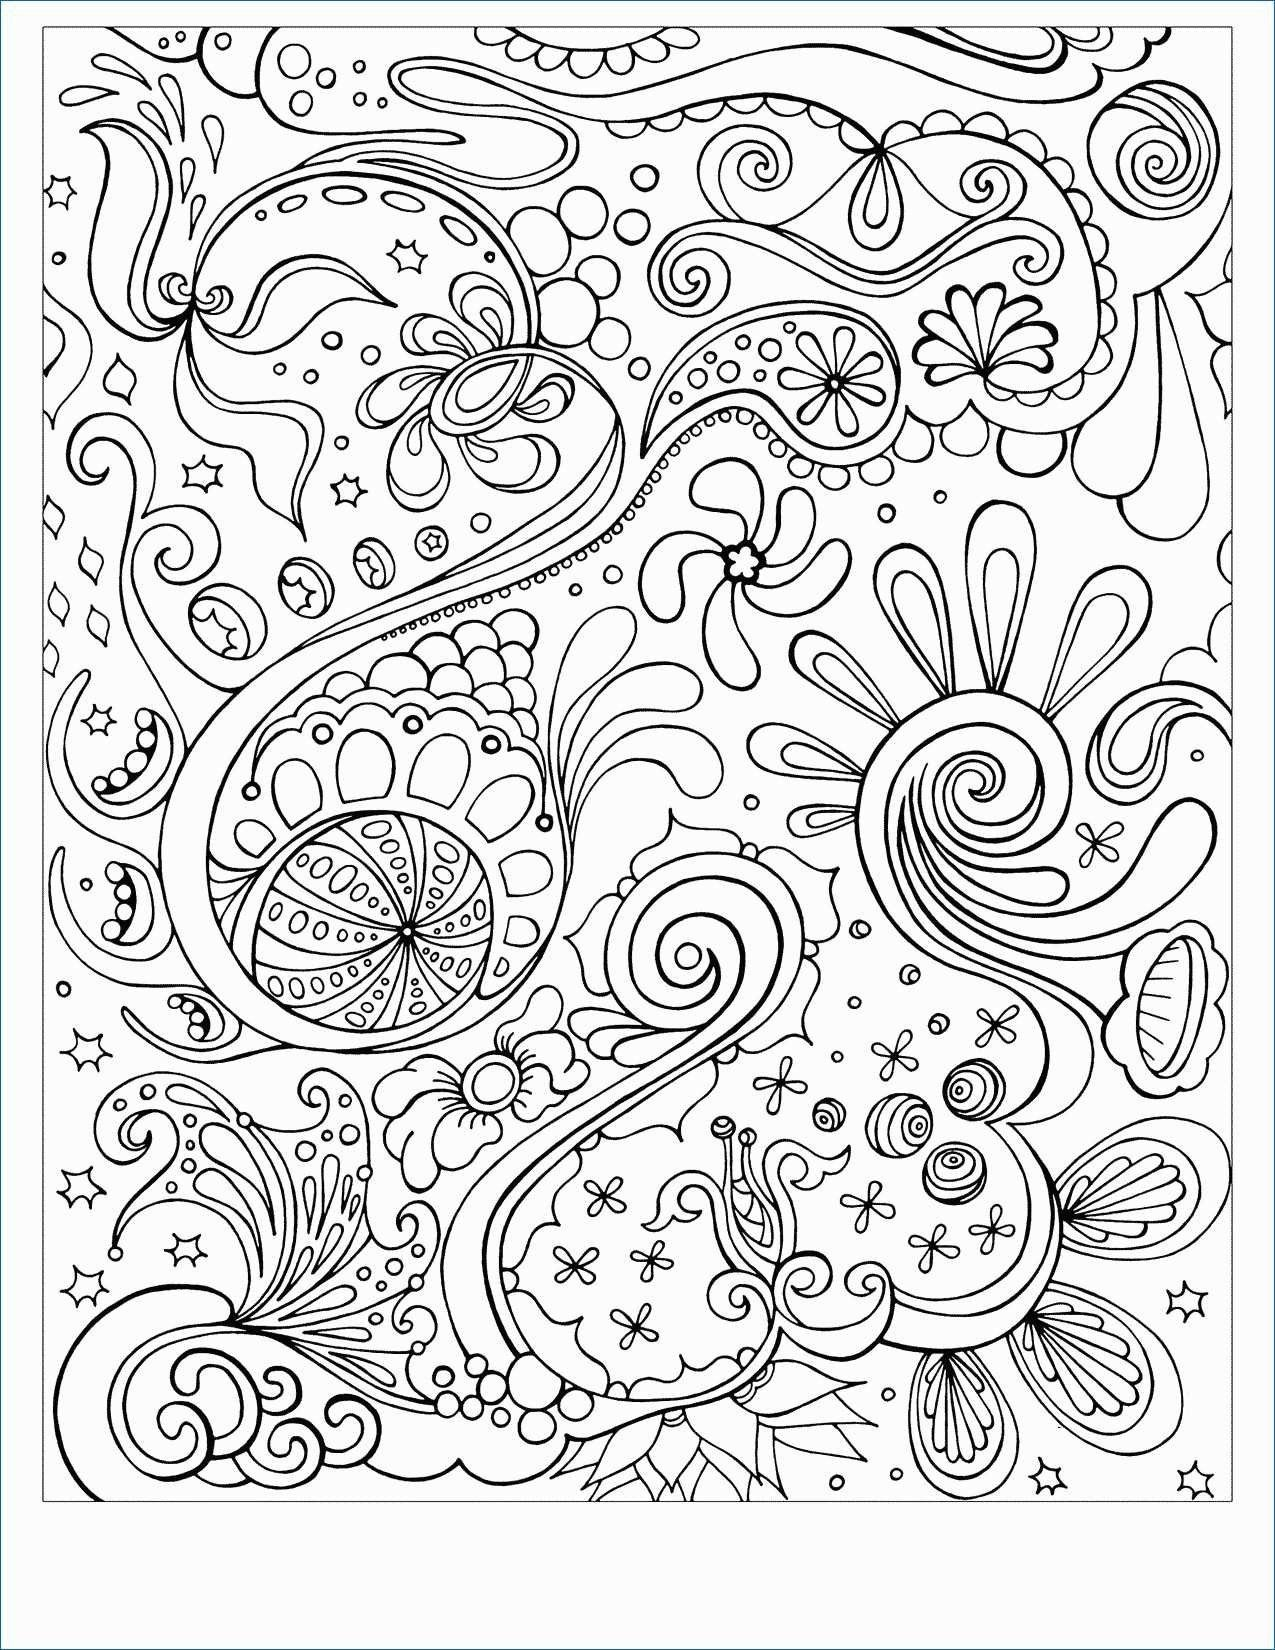 Stress Relief Coloring Pages New Elegant Psychedelic Coloring Pages Abstract Coloring Pages Flower Coloring Pages Free Coloring Pages